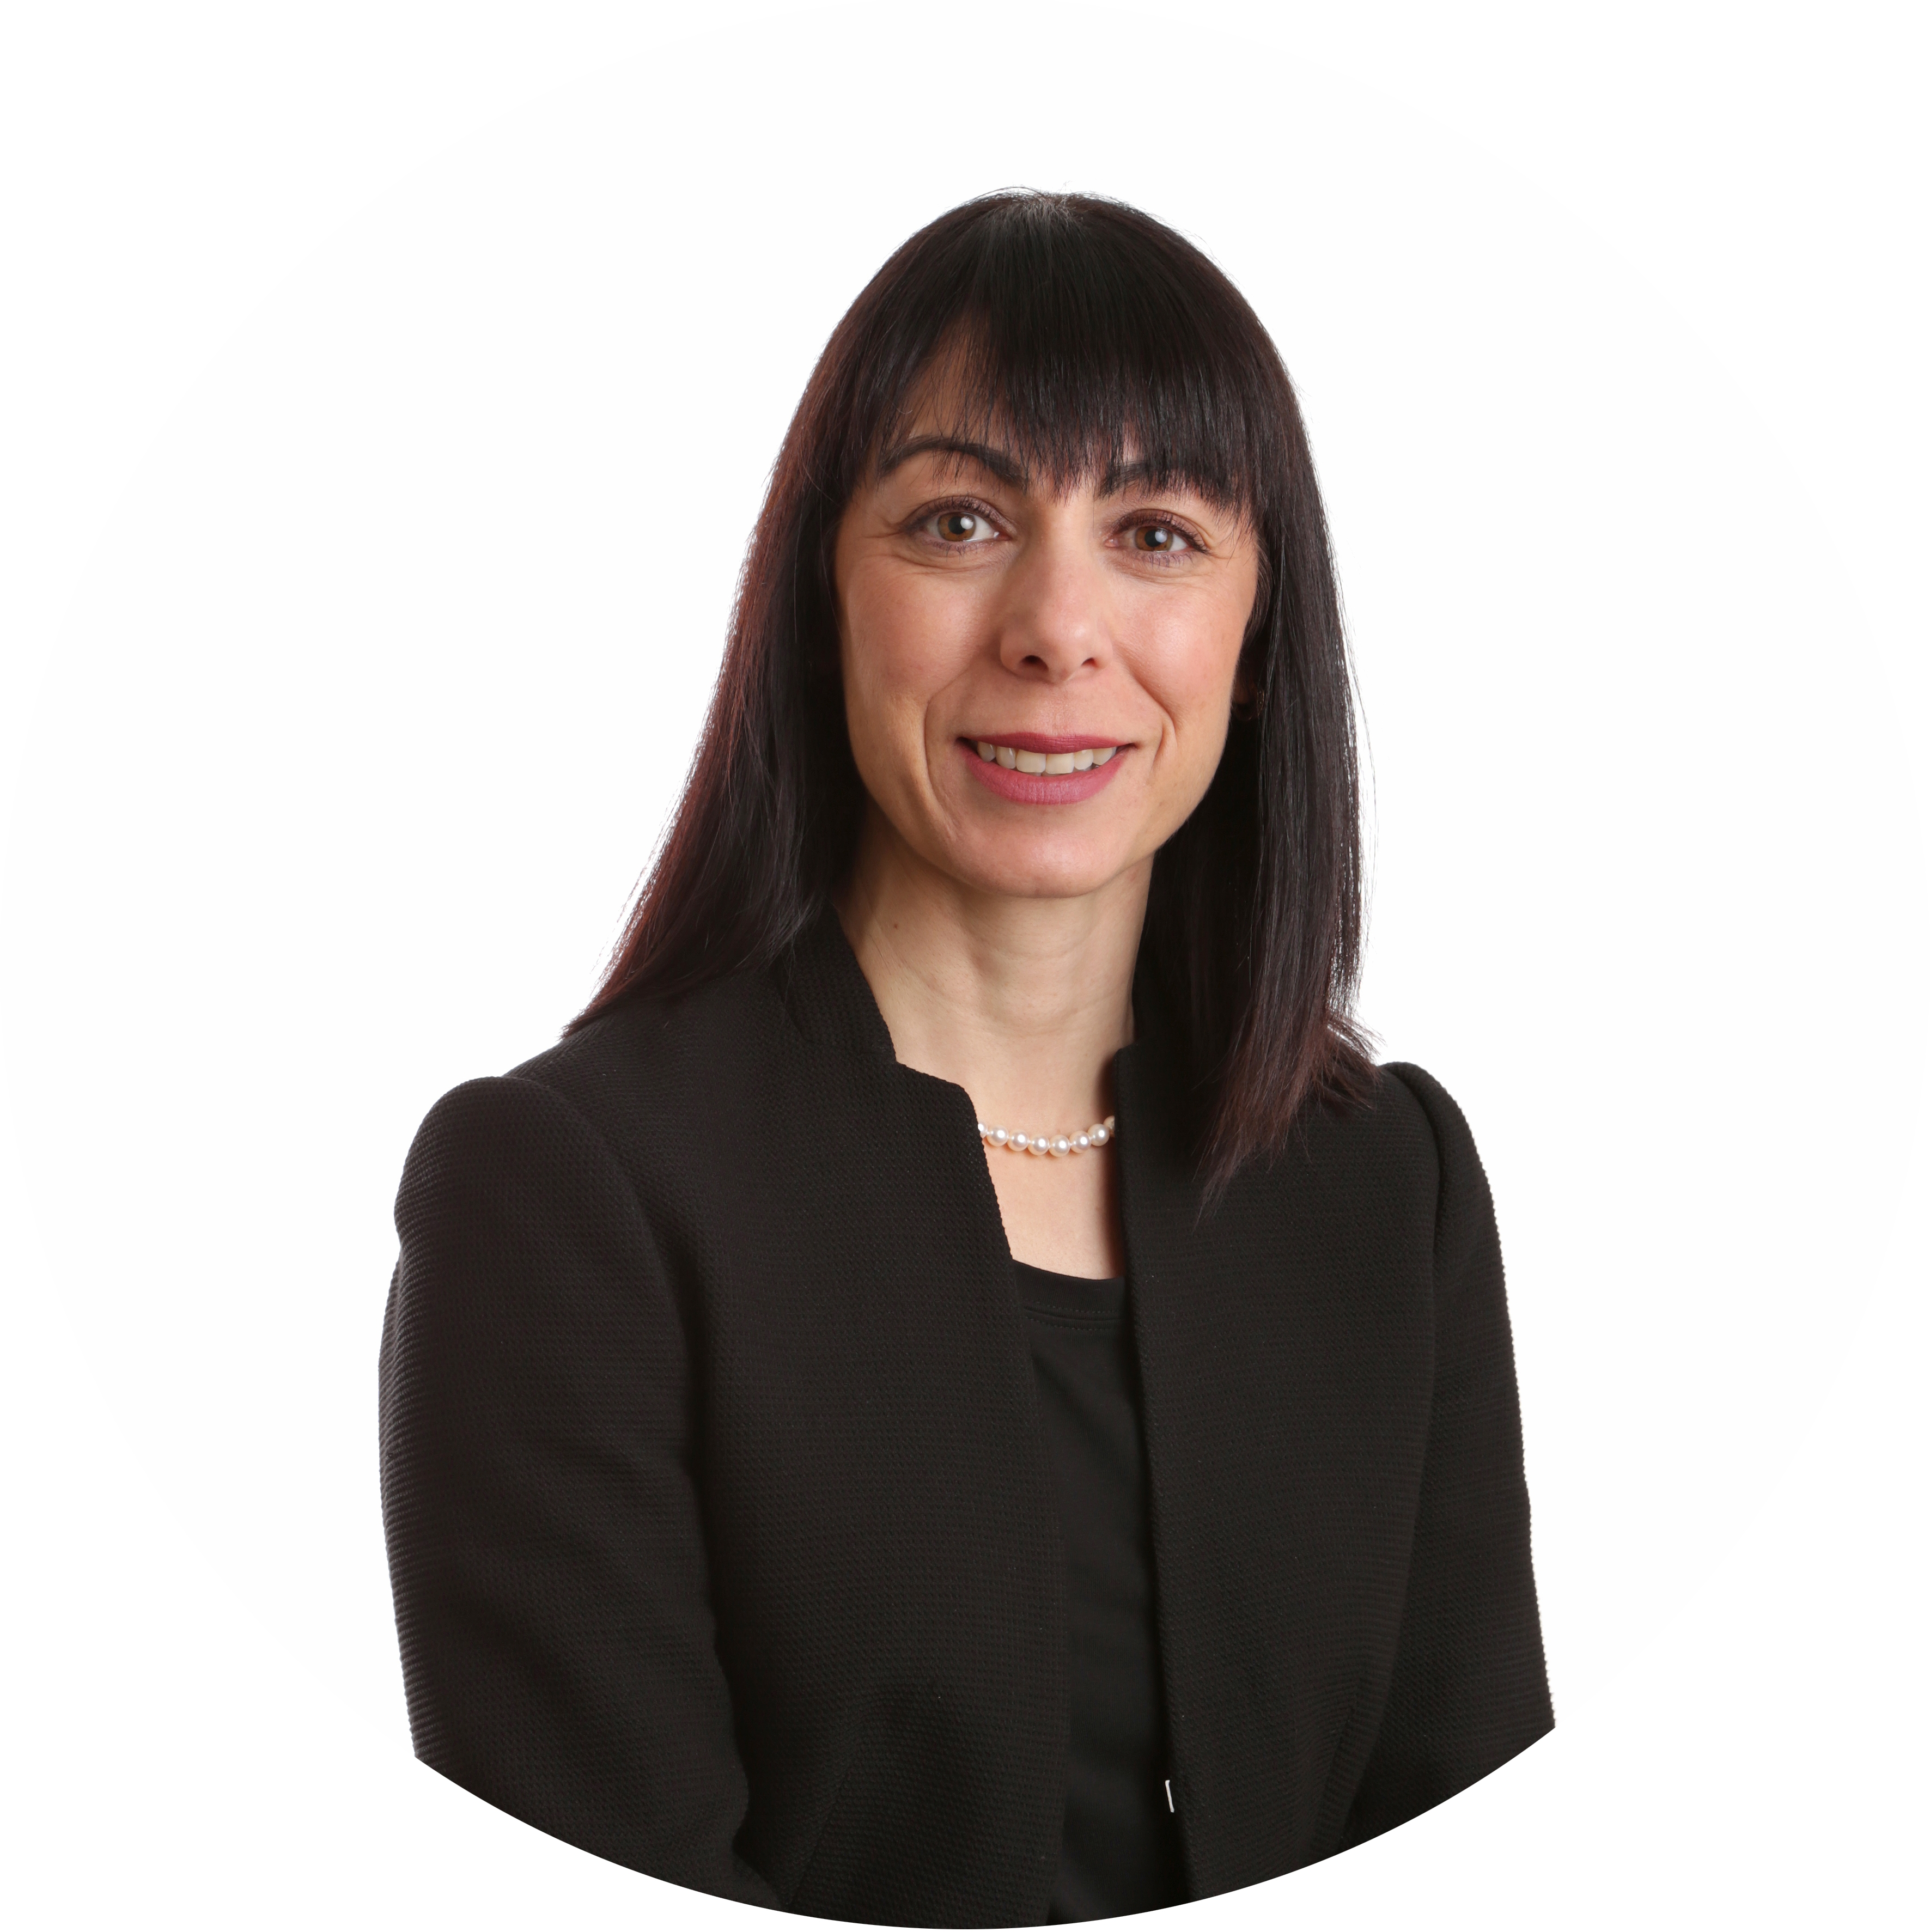 Teresa Jayet, Chief Executive Officer, Mallee Family Care